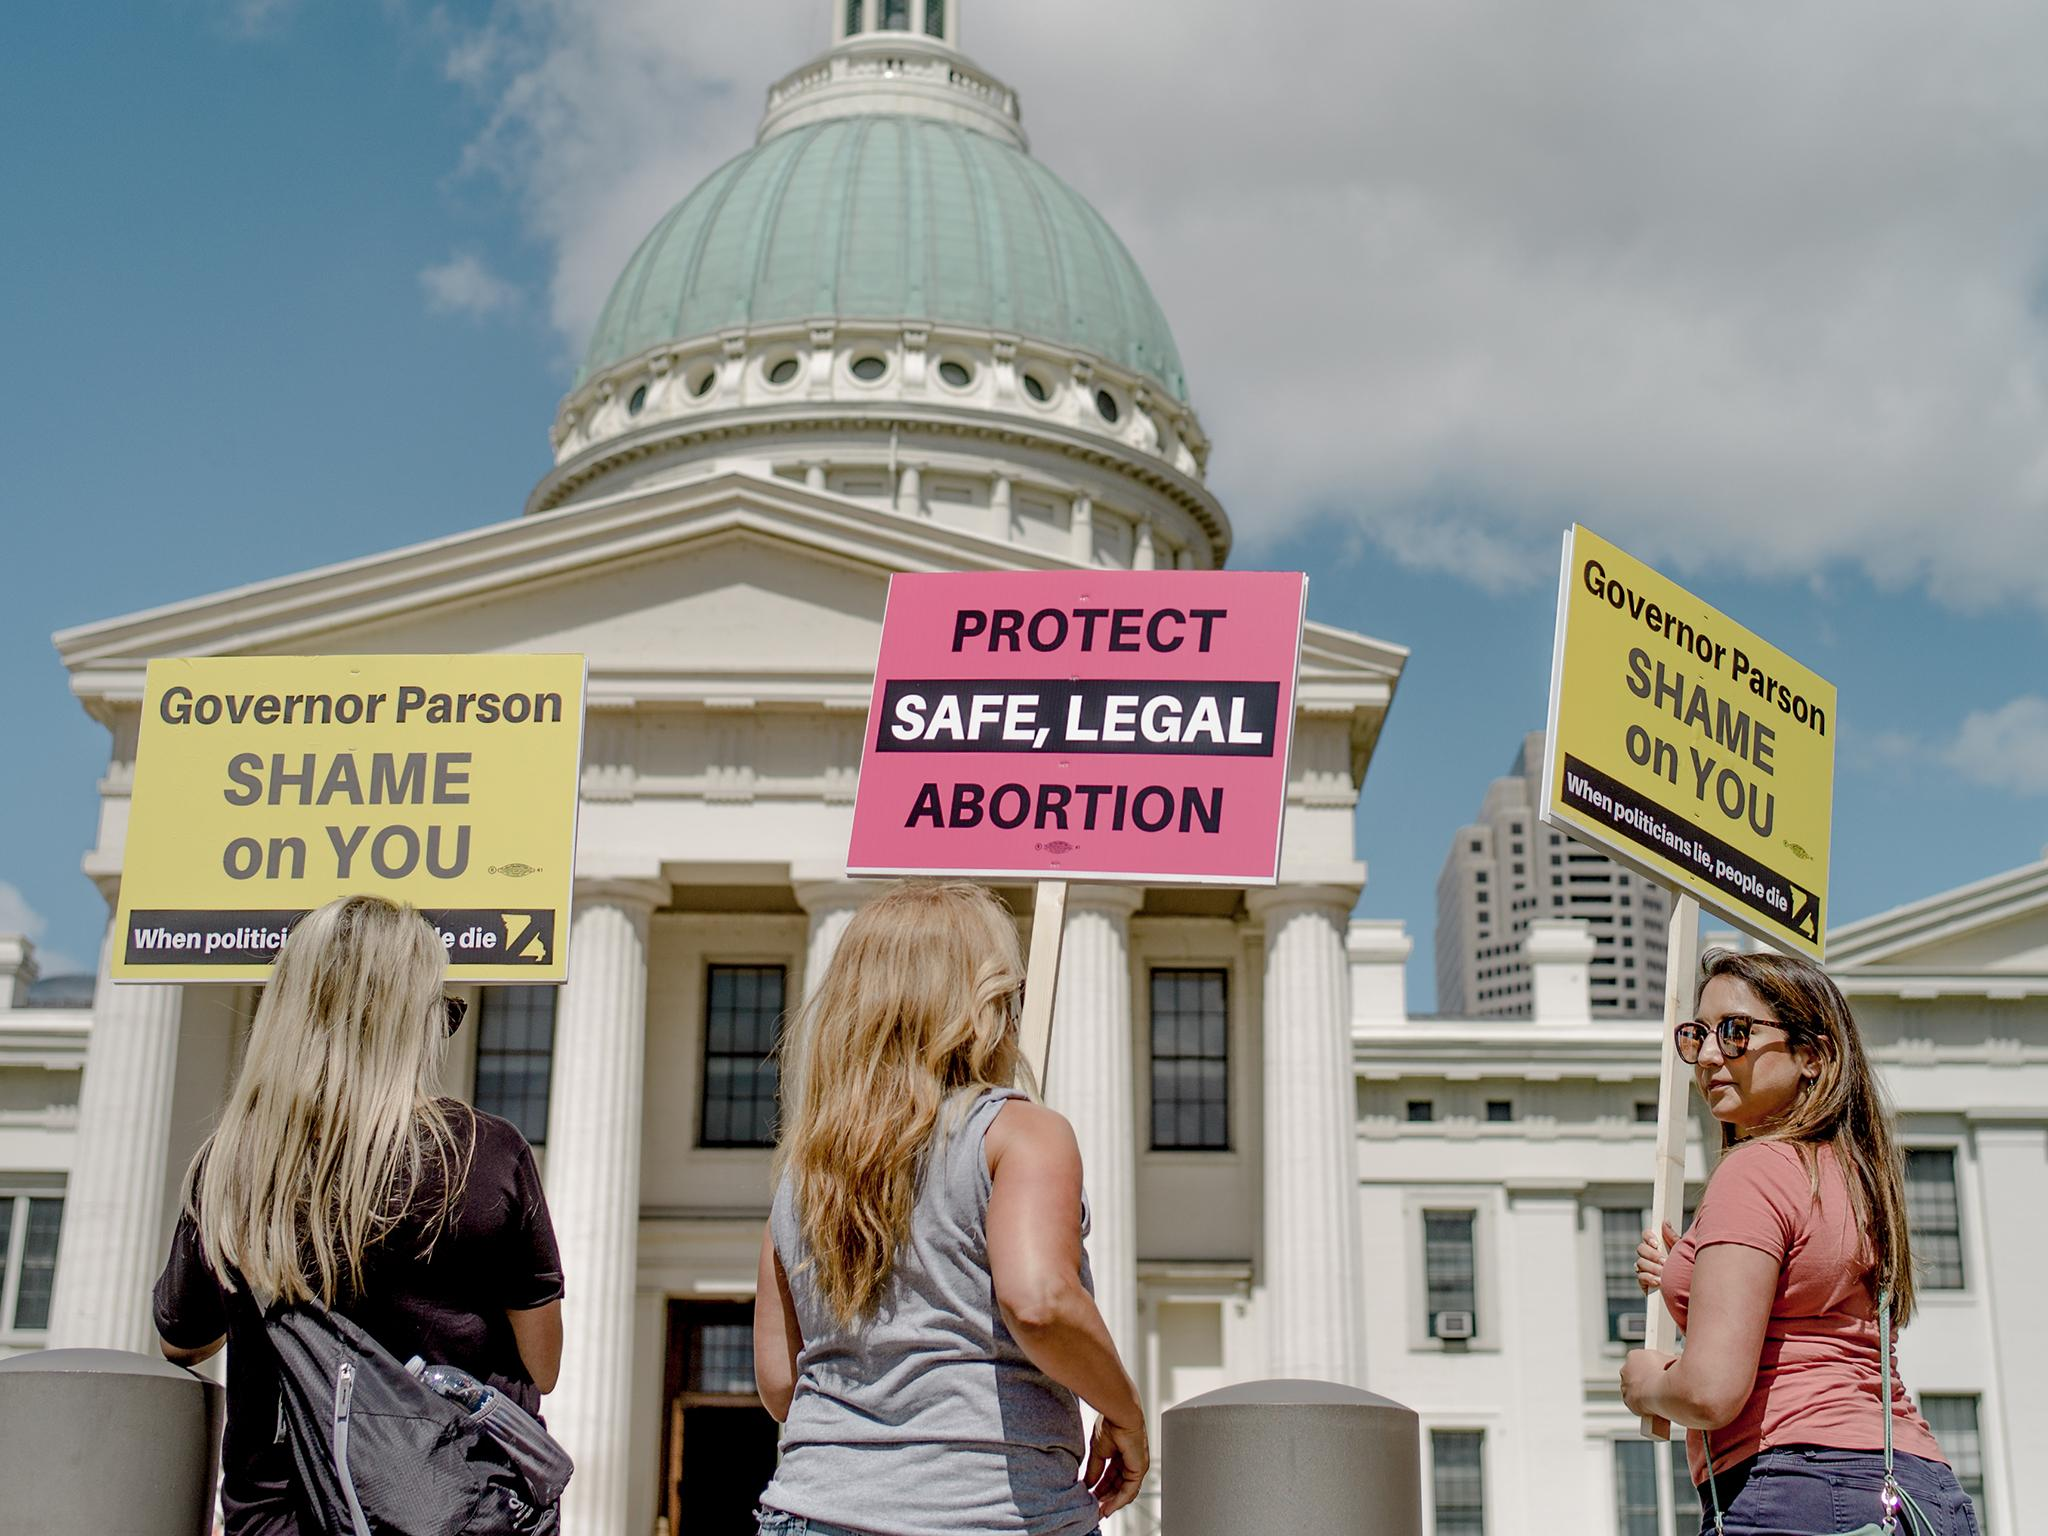 abortion us - Tennessee governor announces plans for strictest anti-abortion laws in US